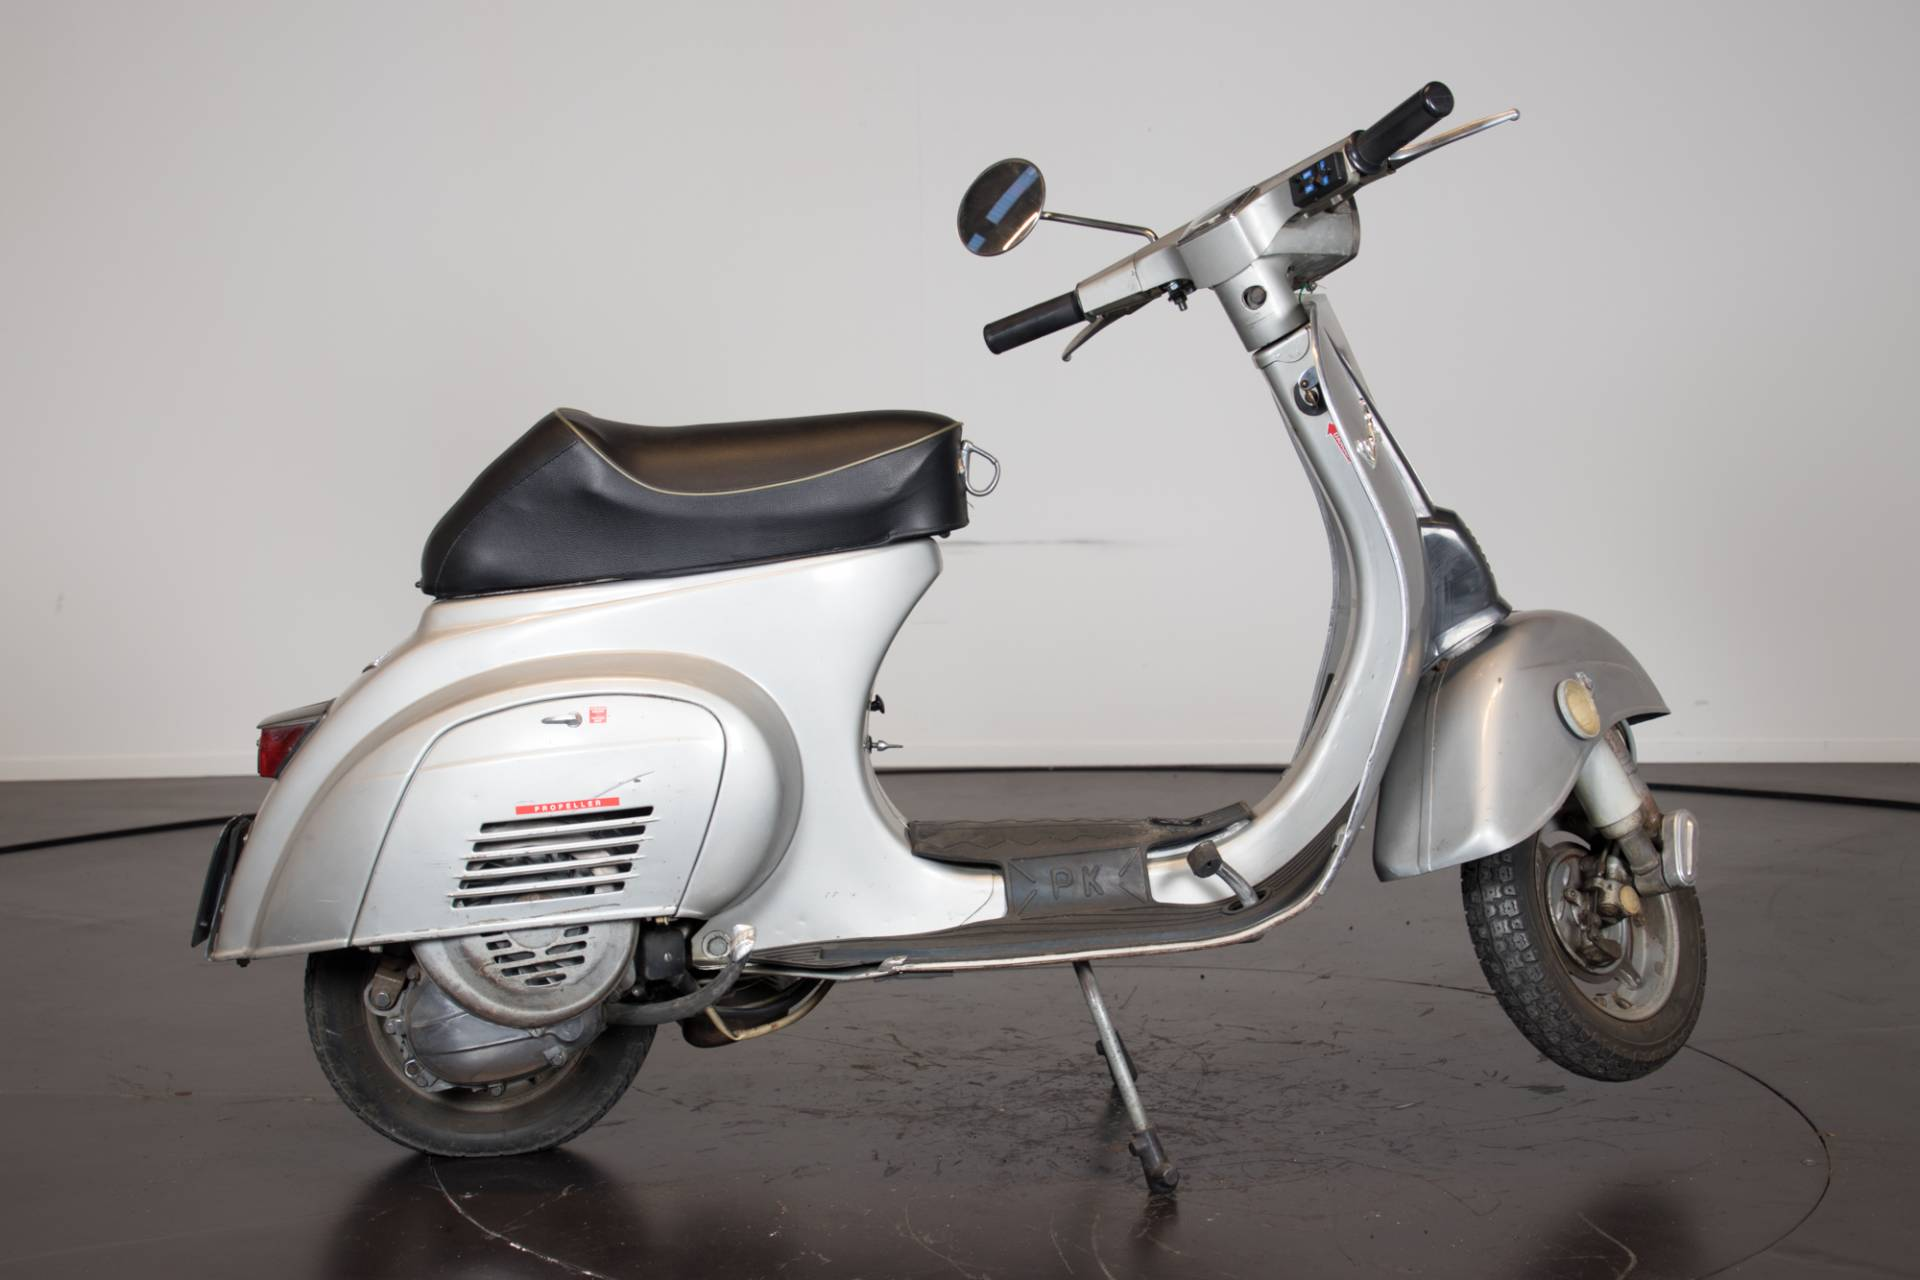 piaggio vespa 50 n special 1970 f r eur kaufen. Black Bedroom Furniture Sets. Home Design Ideas